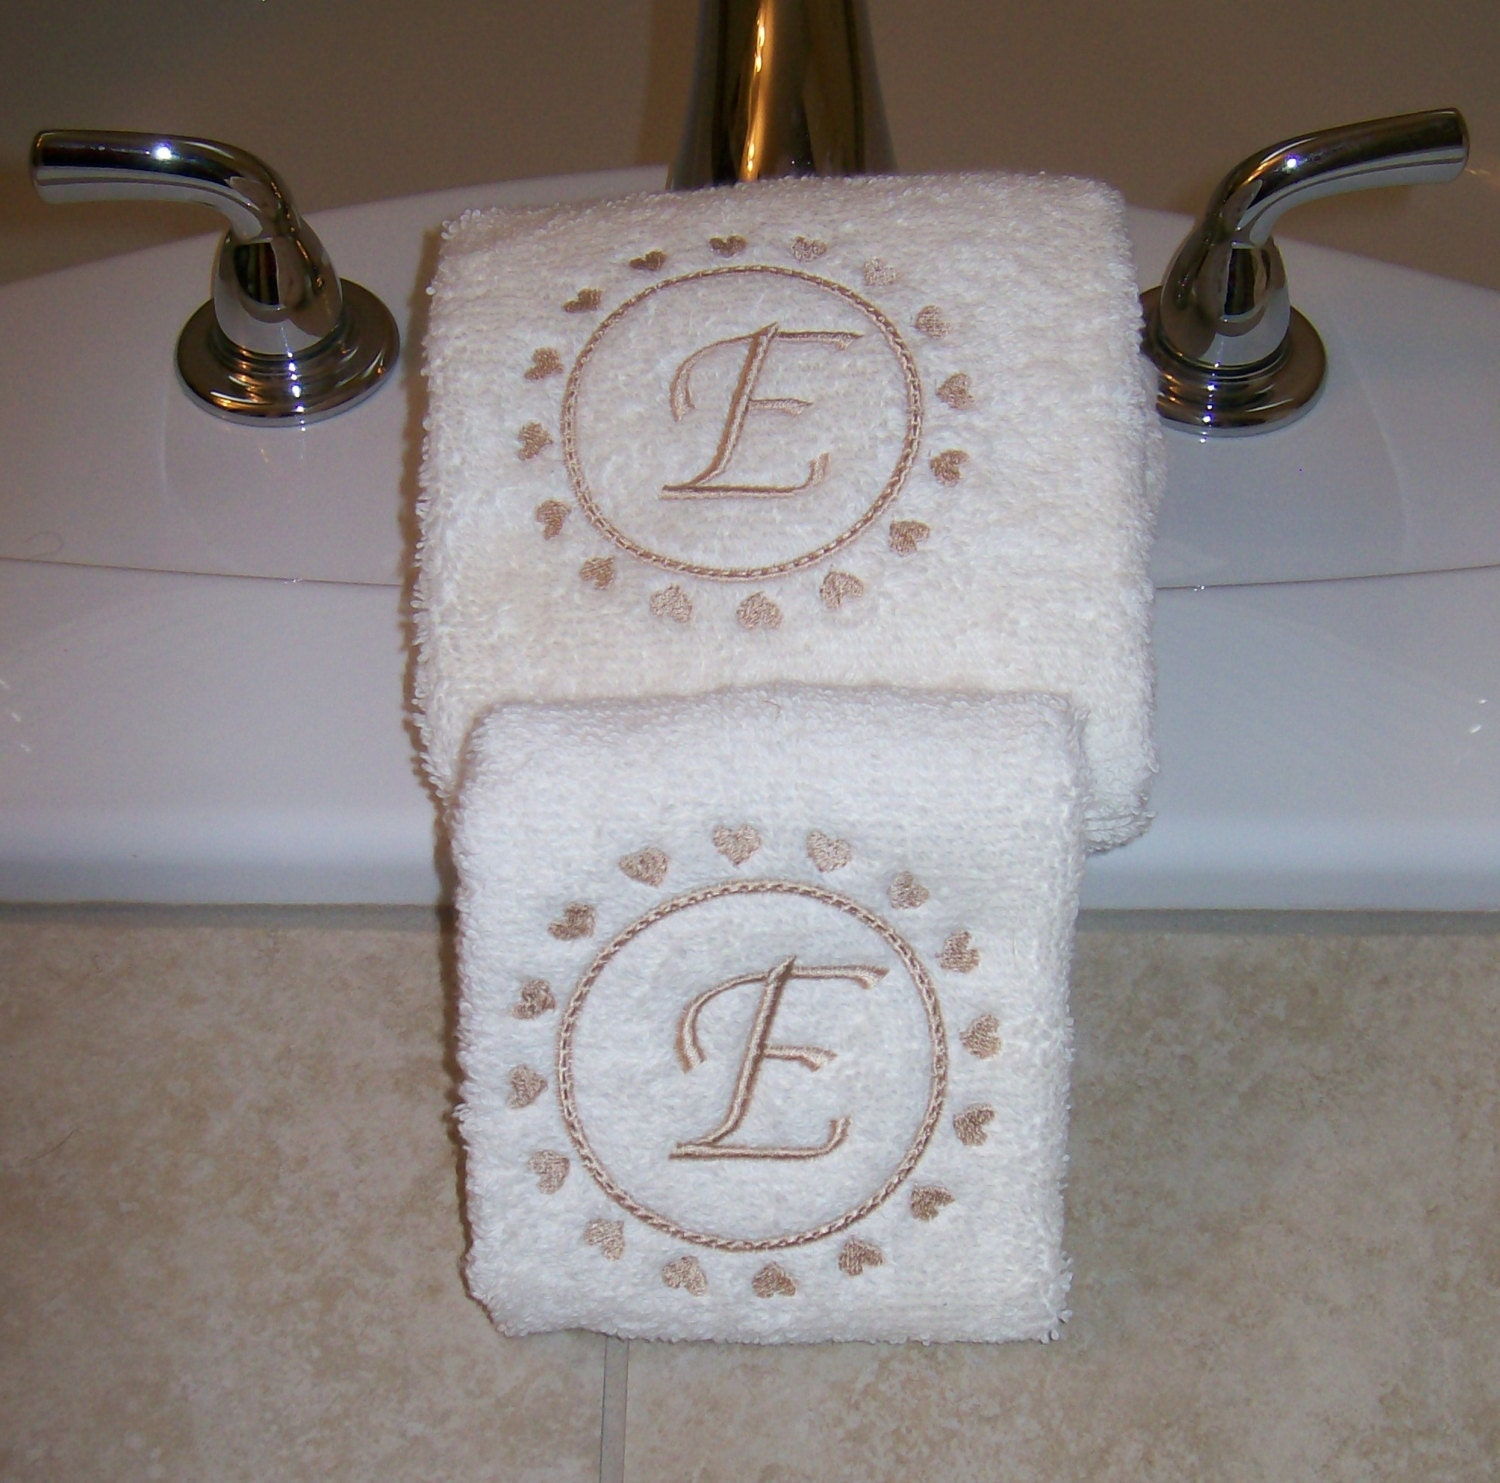 Embroidered Towels Custom: Embroidered Personalized Hand Towels With Hearts And Letter